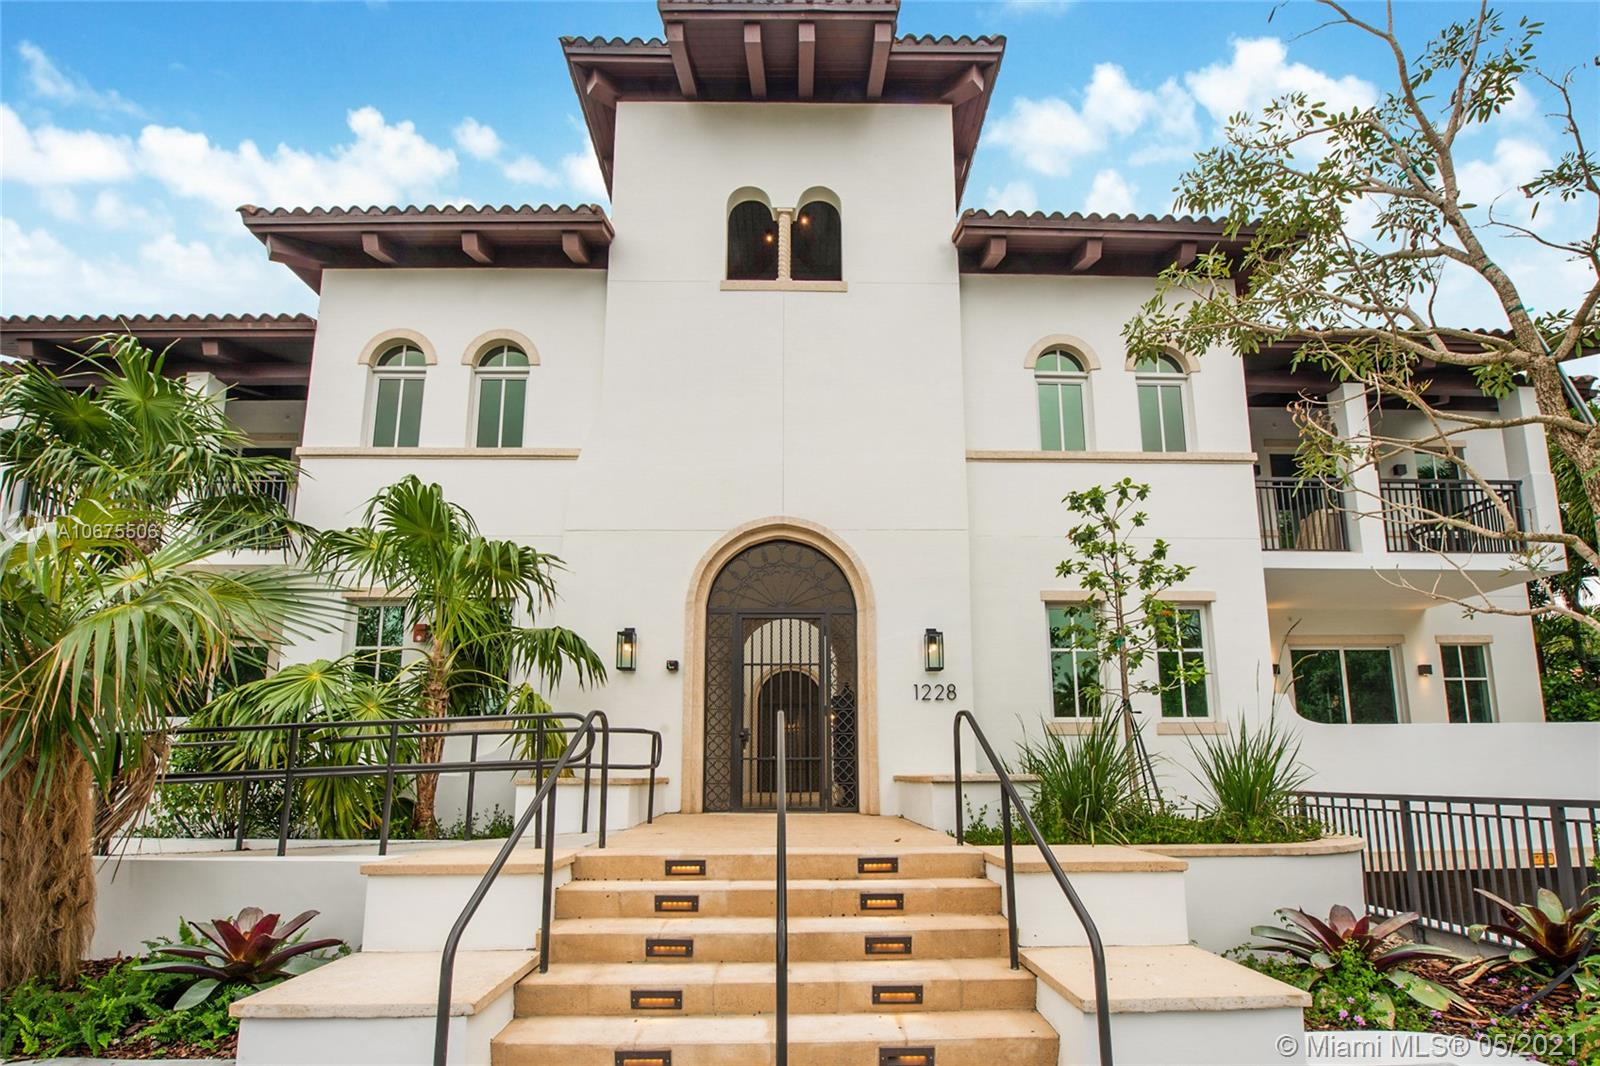 Be one of the fortunate few to live next to the iconic Biltmore Hotel. Enjoy Landmark-resort living in this boutique condo, 11 units on the golf course. Only condo of its kind in an established single-family neighborhood. This penthouse flat offers direct golf course views, private elevator, 3 balconies, & covered terrace w/summer kitchen and 3 covered parking. Timeless beauty; the classic architecture, in keeping with Merrick's vision, is complemented by contemporary interiors, Italian Veneta Cucina kitchen, Wolf/Sub Zero appliances, sleek European doors & spa master bath. For a quick cool down, enjoy the residents' dipping pool, deck & tall privacy hedge. 1-year free membership to The Club at the Biltmore.  LA incl. covered Summer kitchen and TOTAL includes balcony.